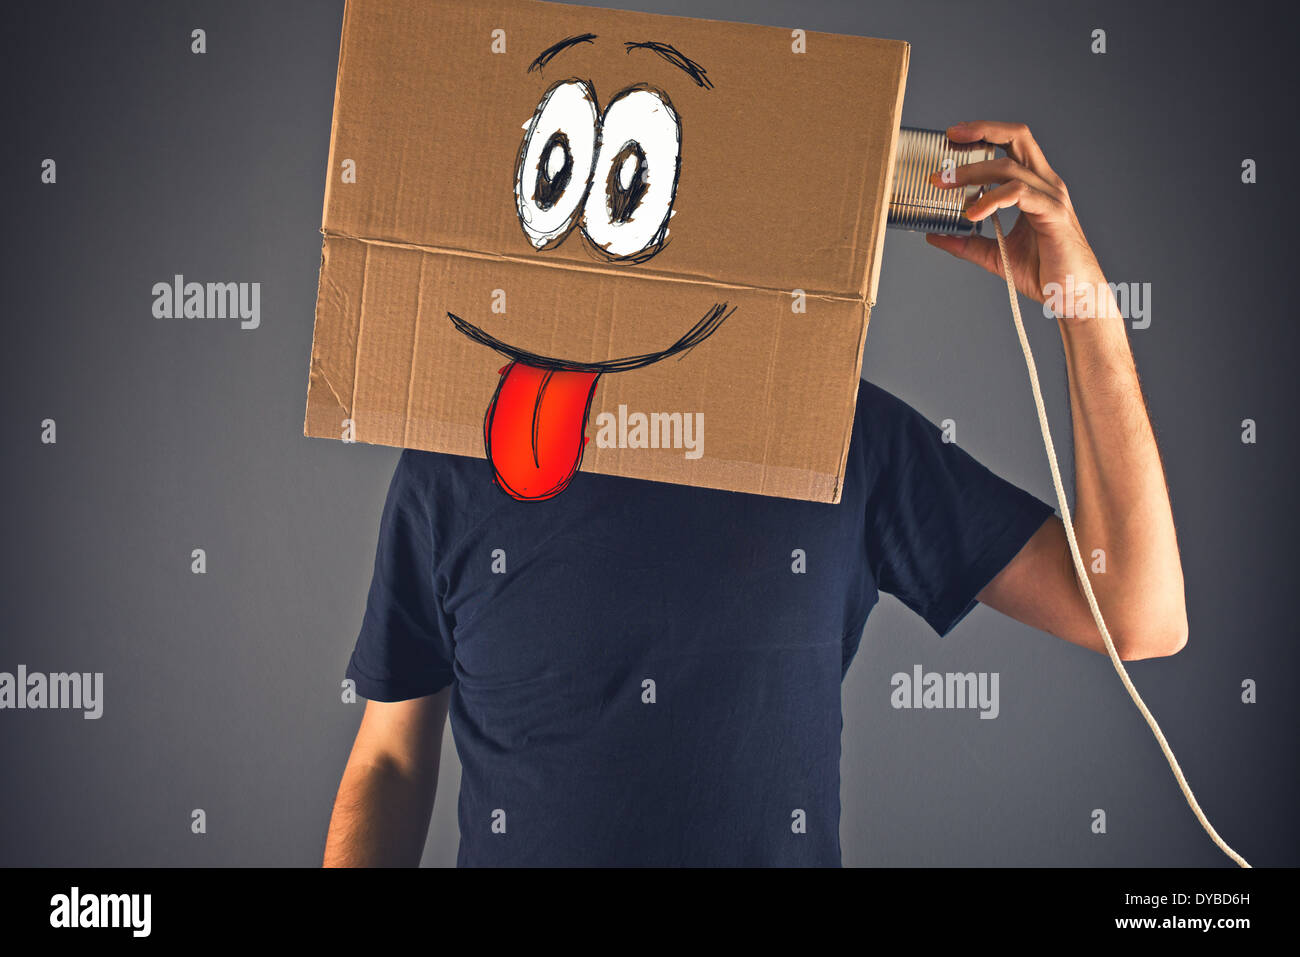 Man with cardboard box on his head using tin can telephone for conversation. Happy face expression. Stock Photo